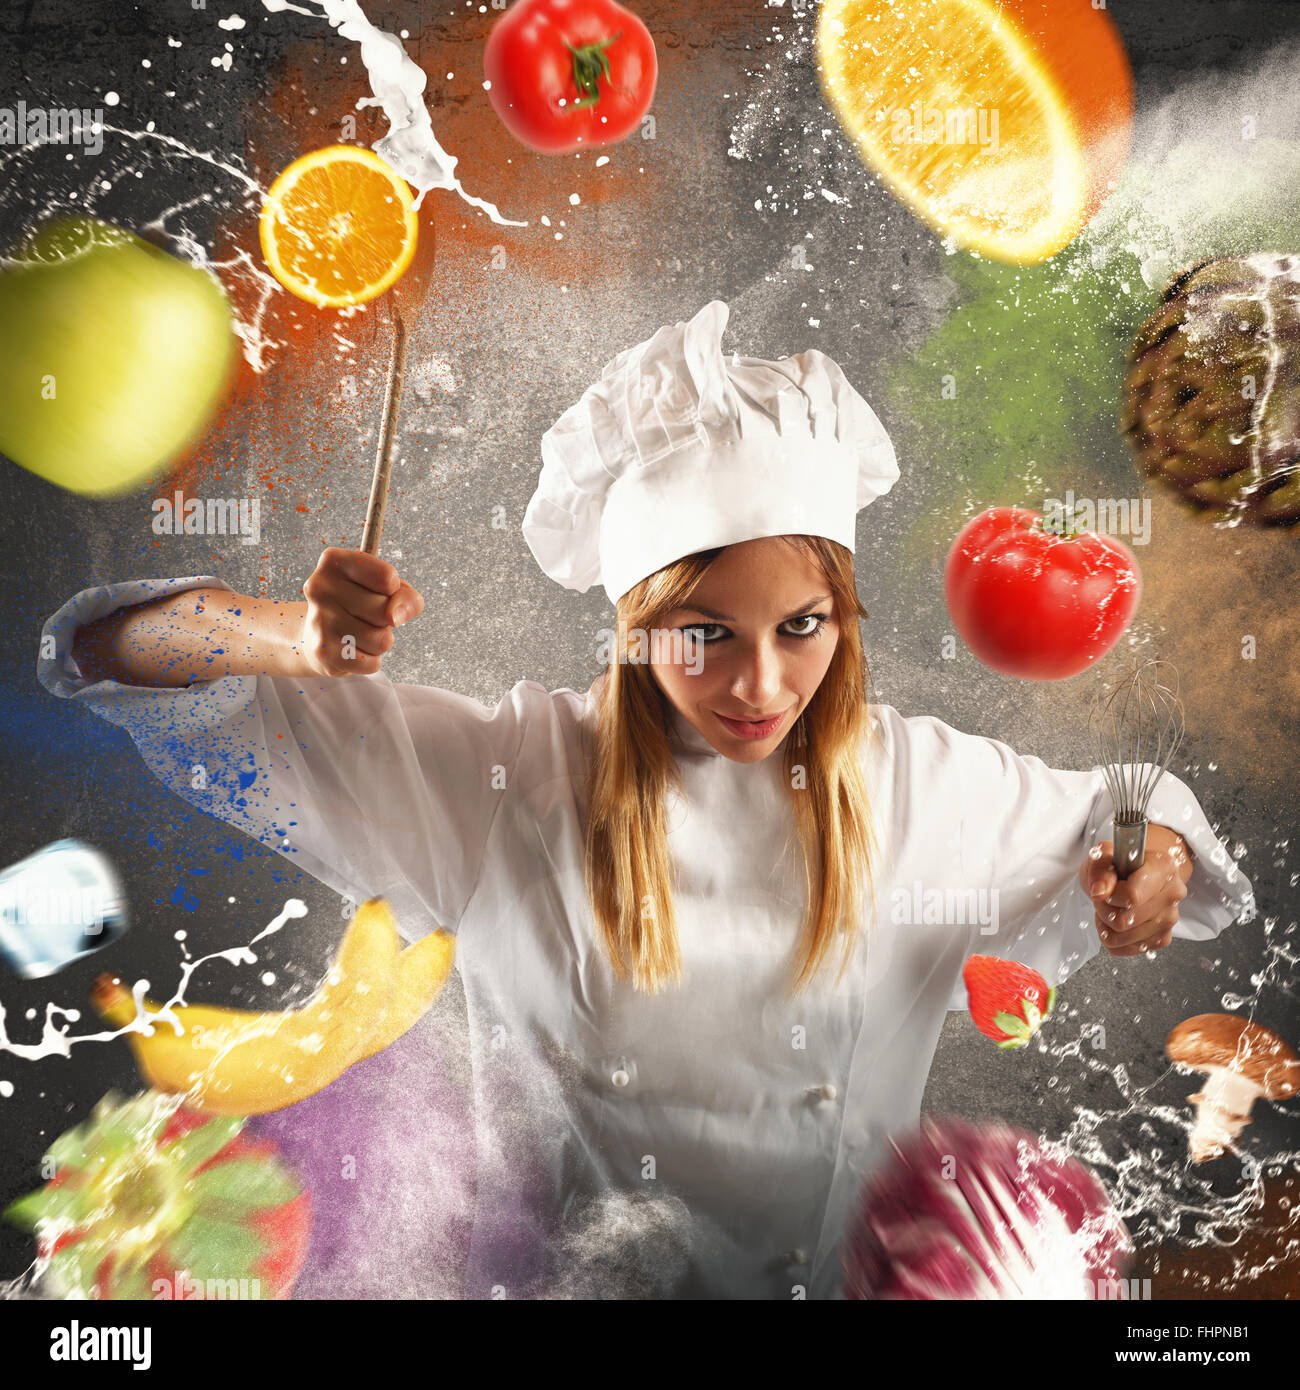 Angry and demanding chef - Stock Image